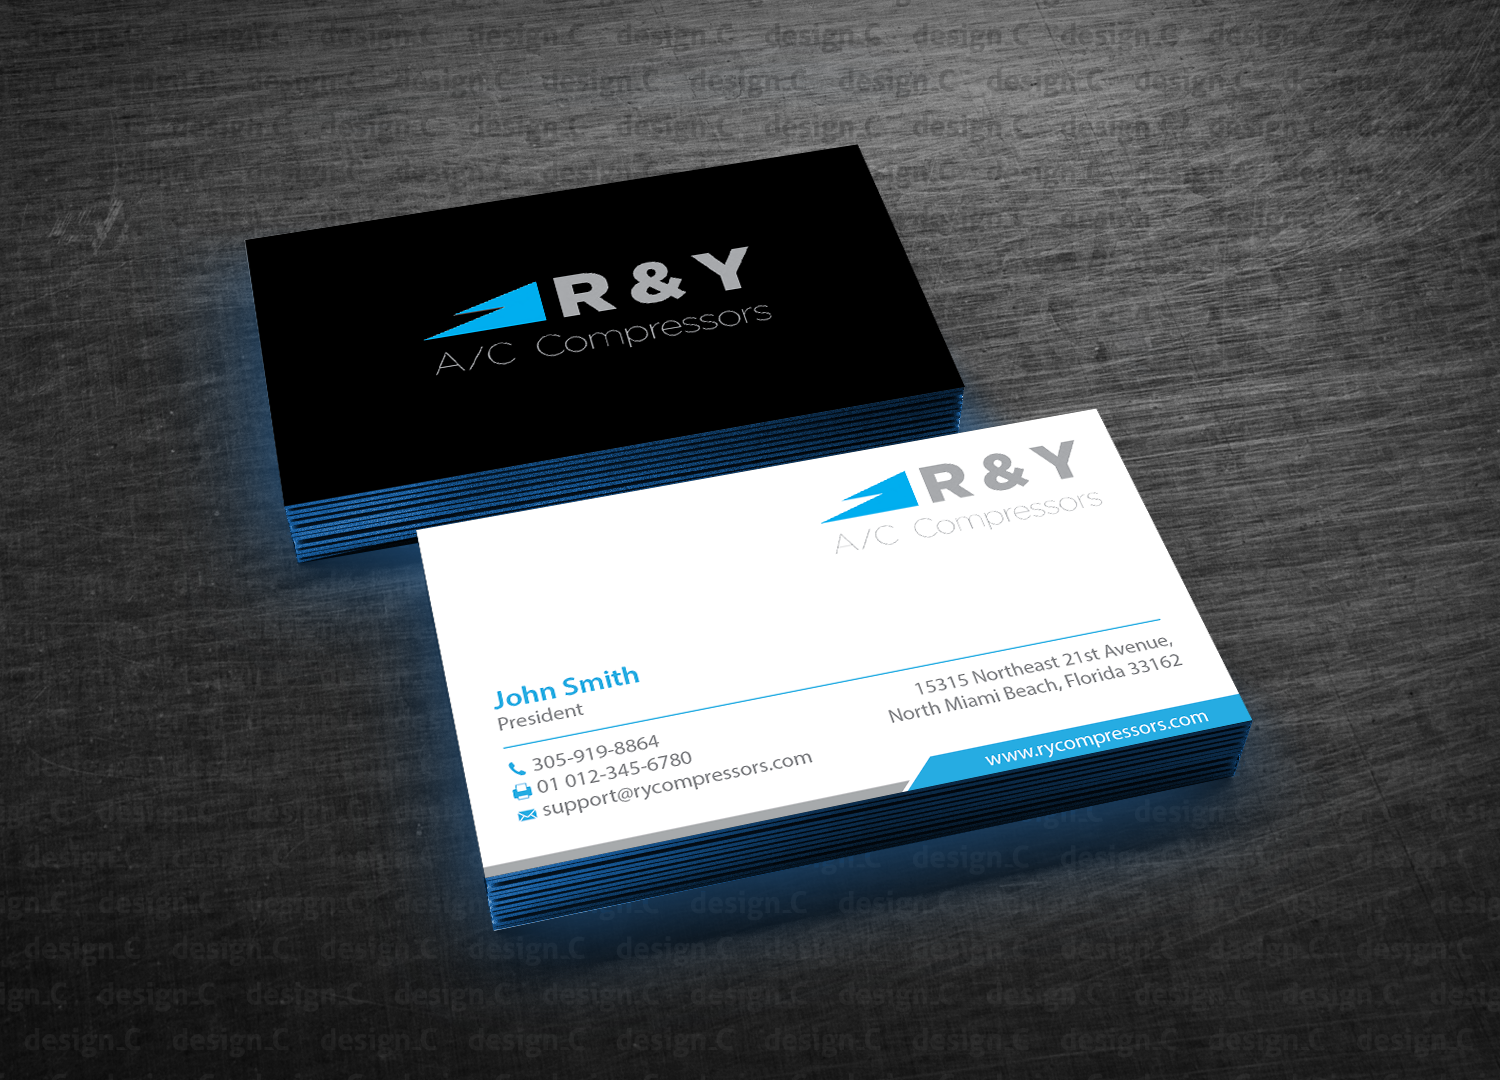 Professional modern automotive business card design for r y ac business card design by designc for r y ac compressors design reheart Choice Image